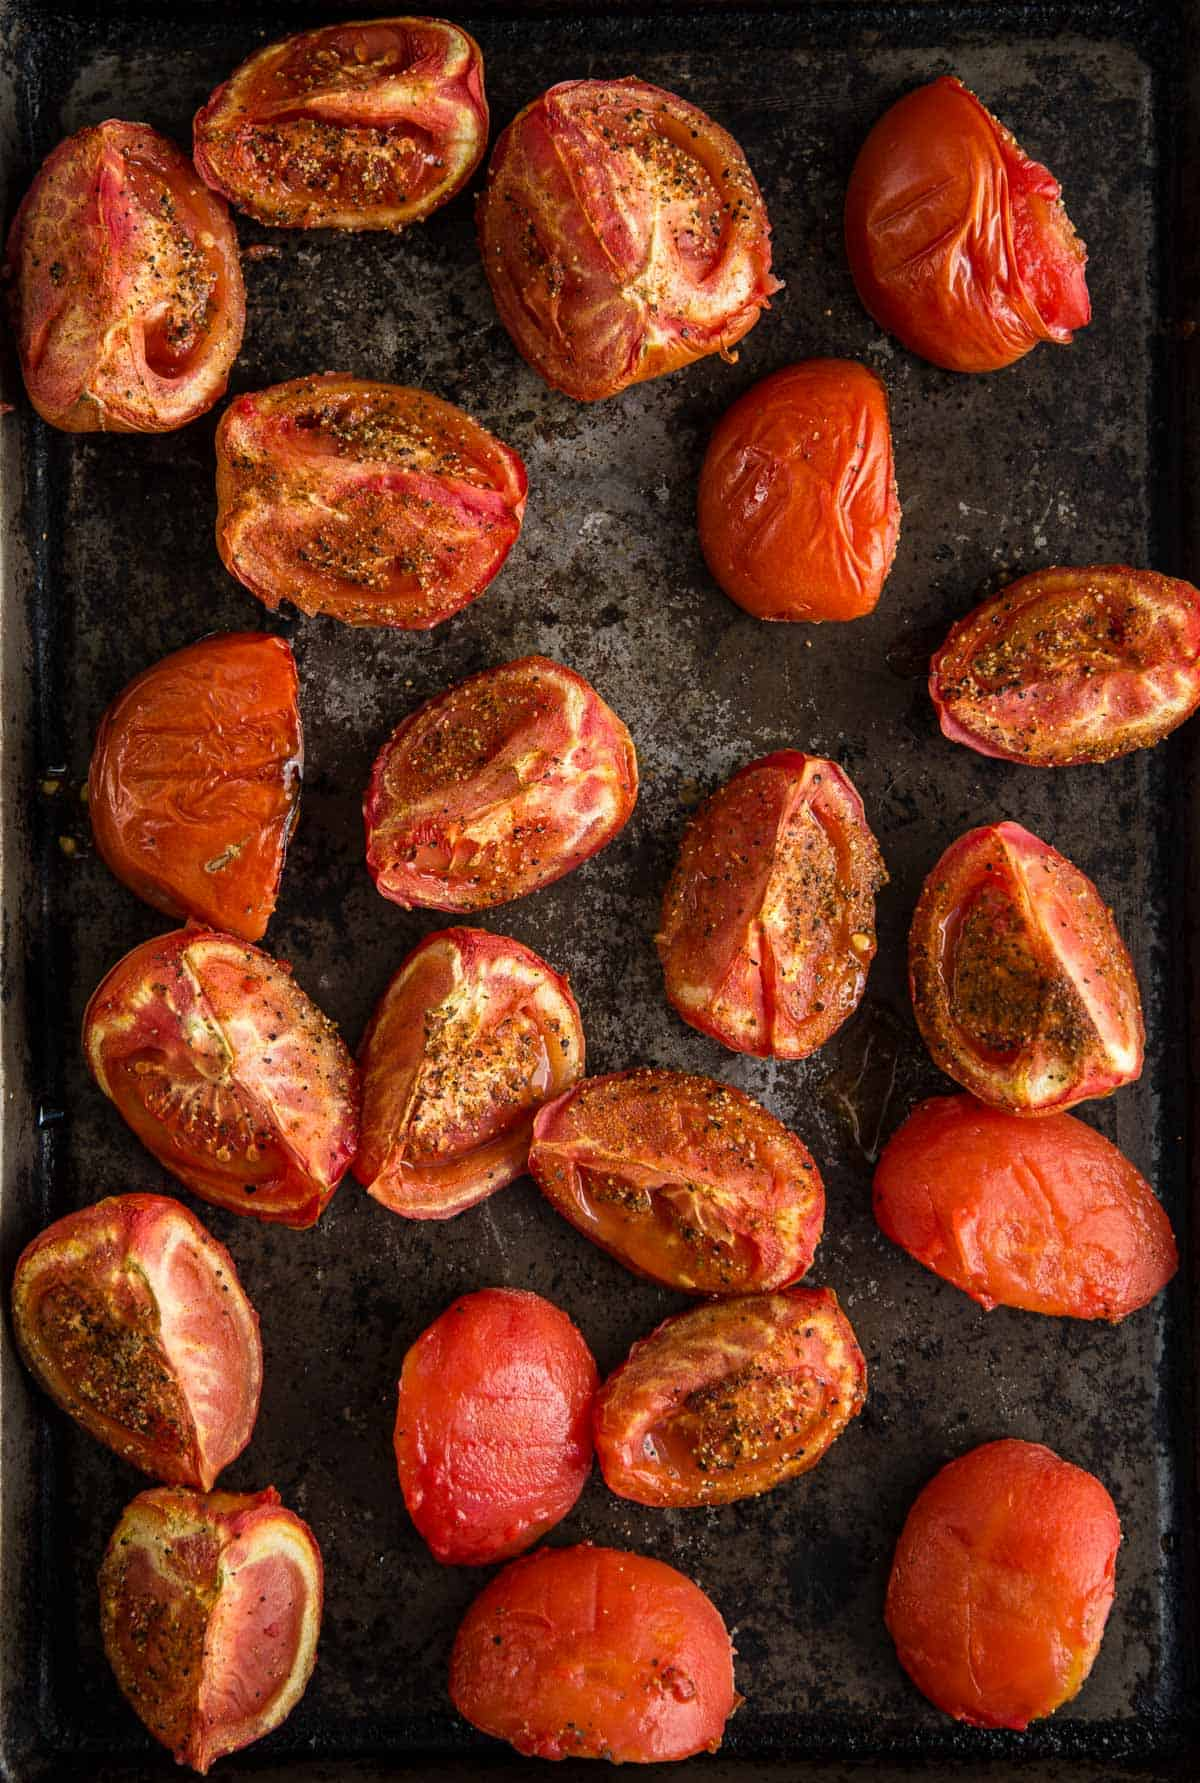 A pan full of smoked tomatoes